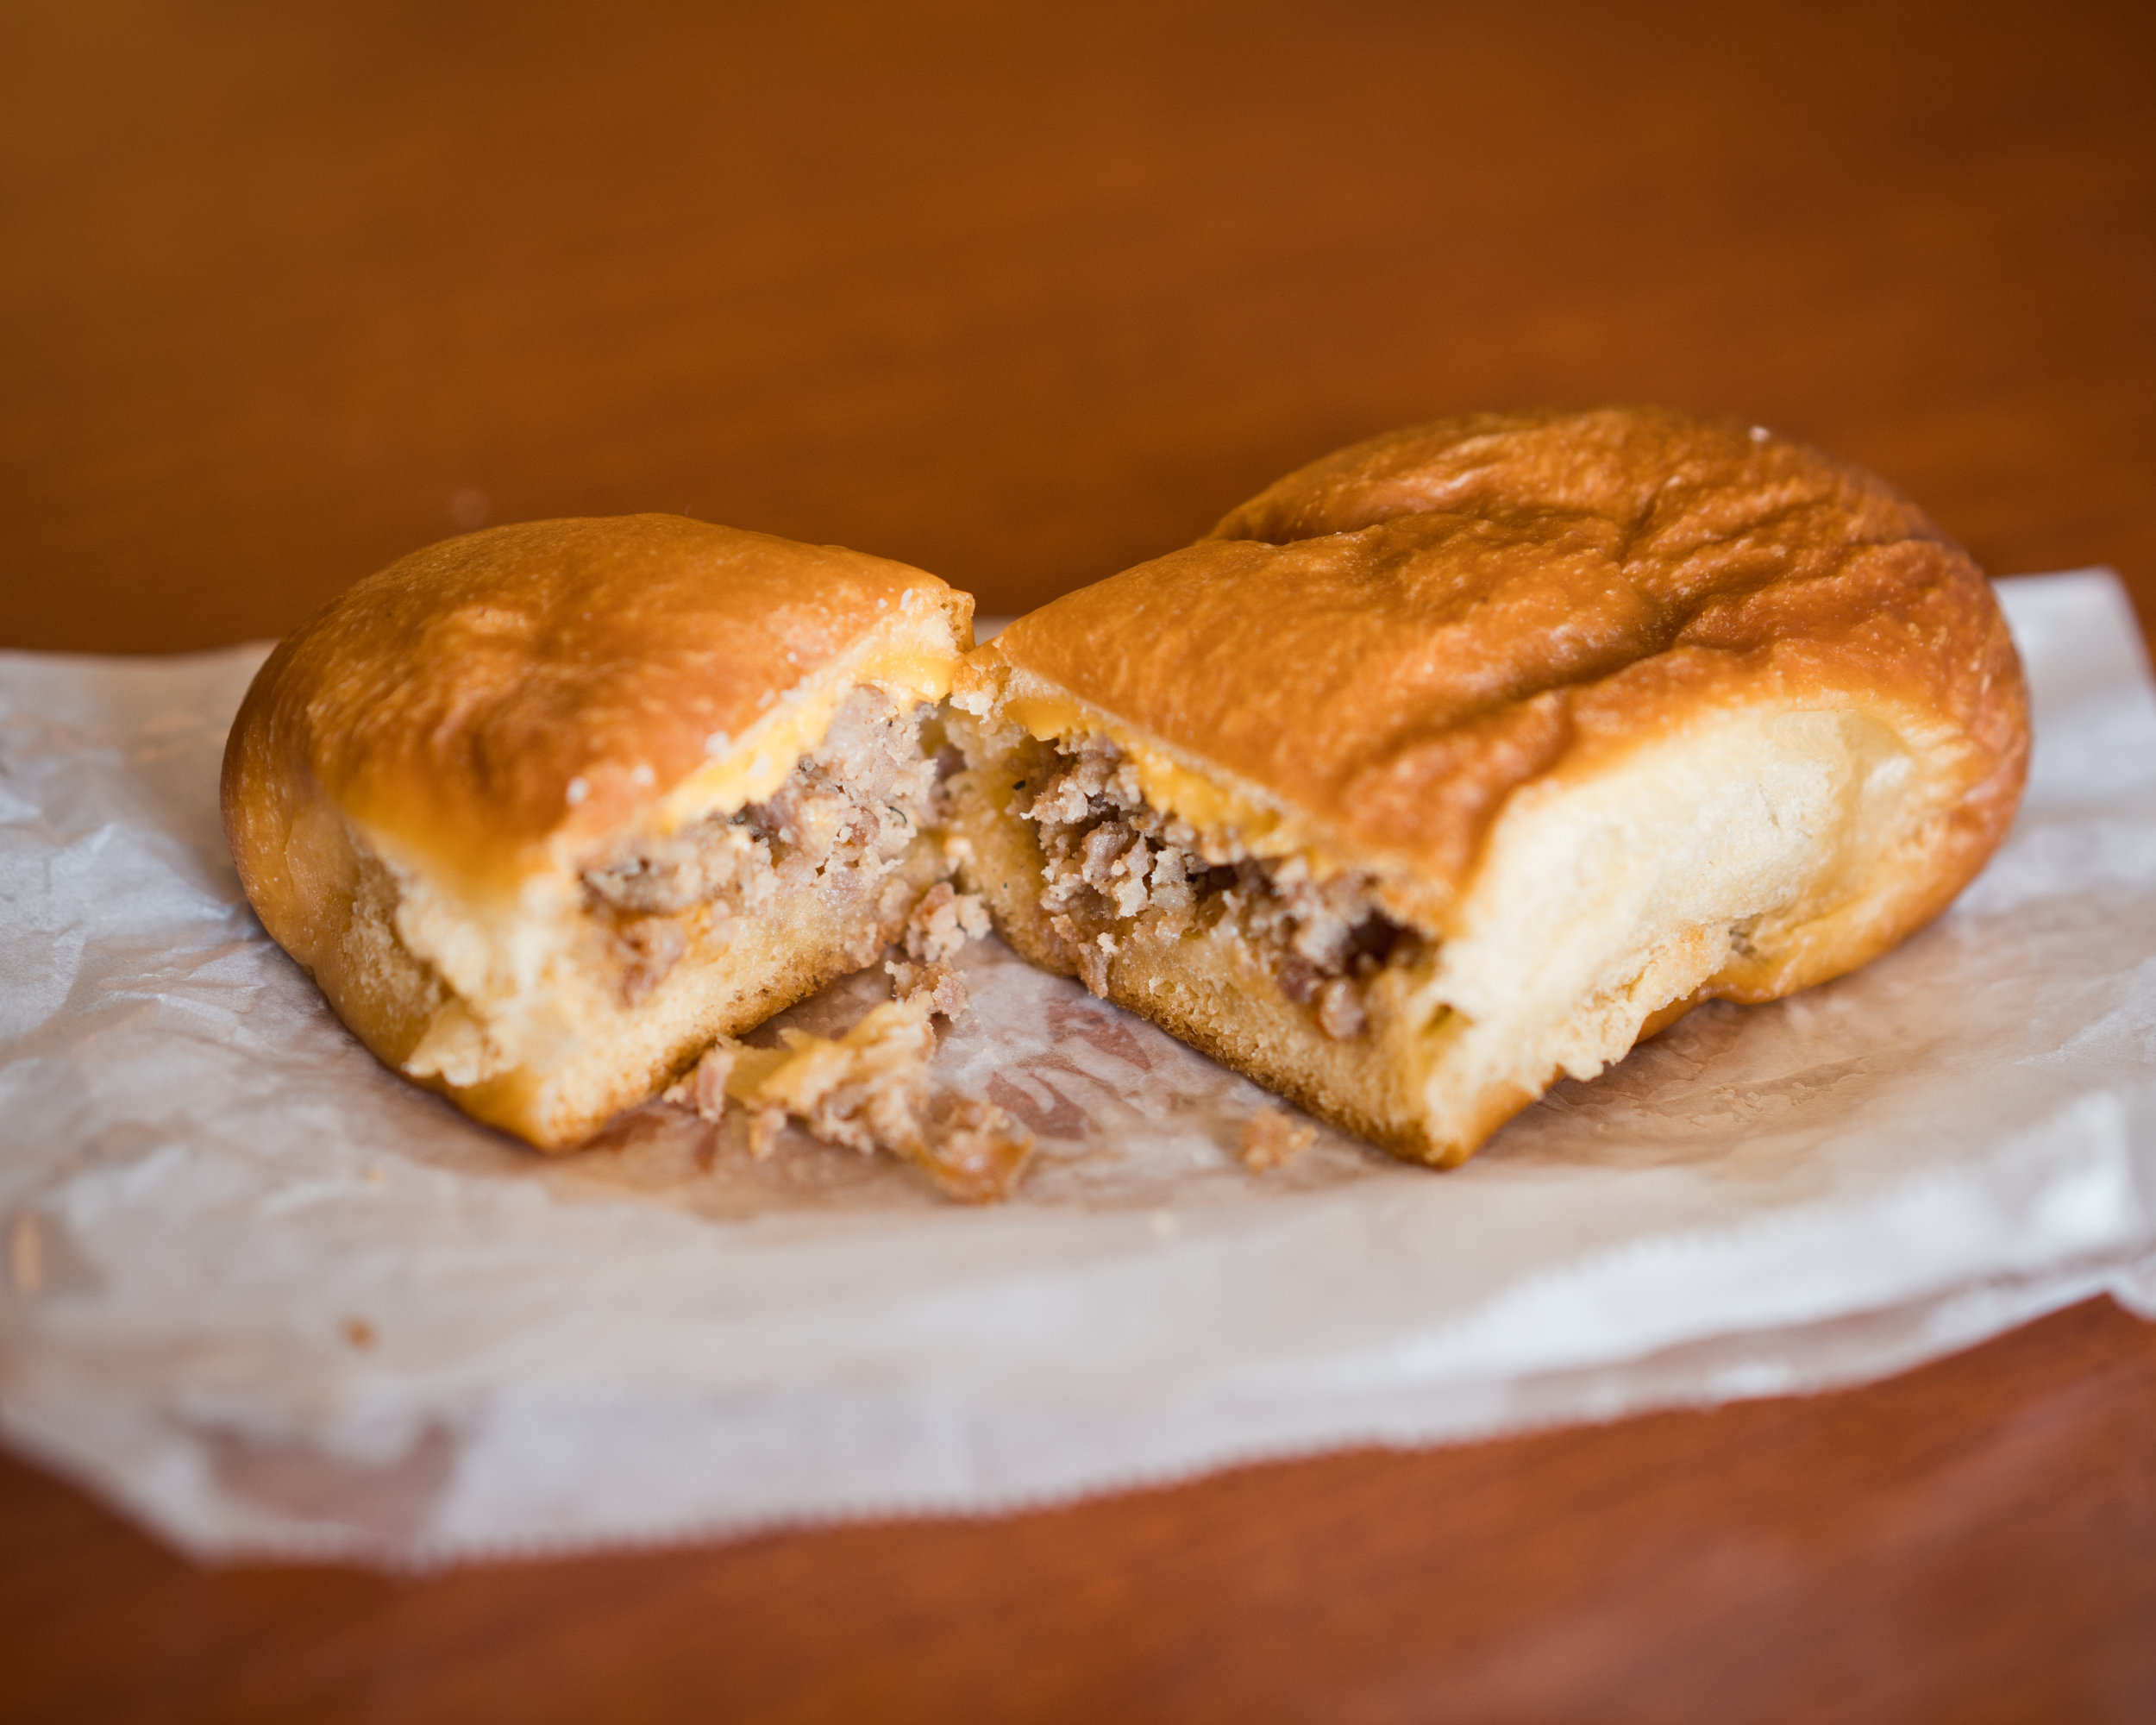 King-Sized portions seems to be the name of the game at Gerik's. This massive klobasnek was filled with perfectly spiced ground sausage and cheese. The only thing that could make this roll better is more meat! It's that good!